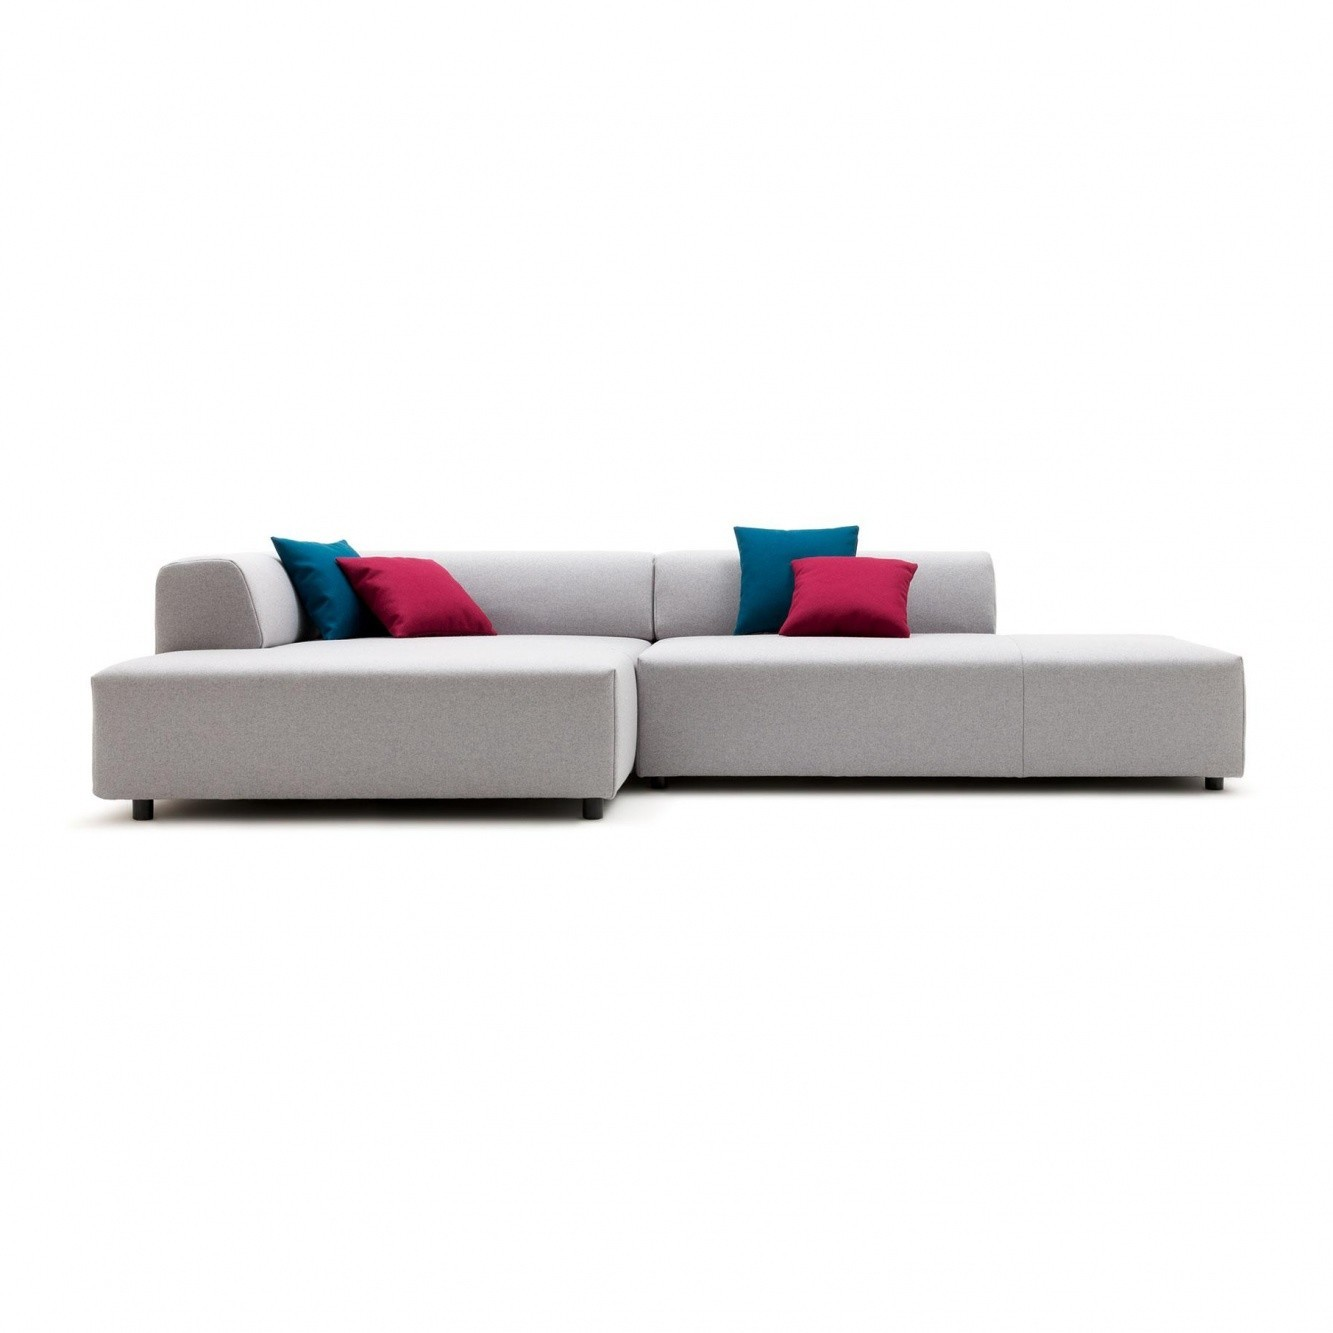 Freistil Rolf Benz Freistil 184 Lounge Sofa Ambientedirect